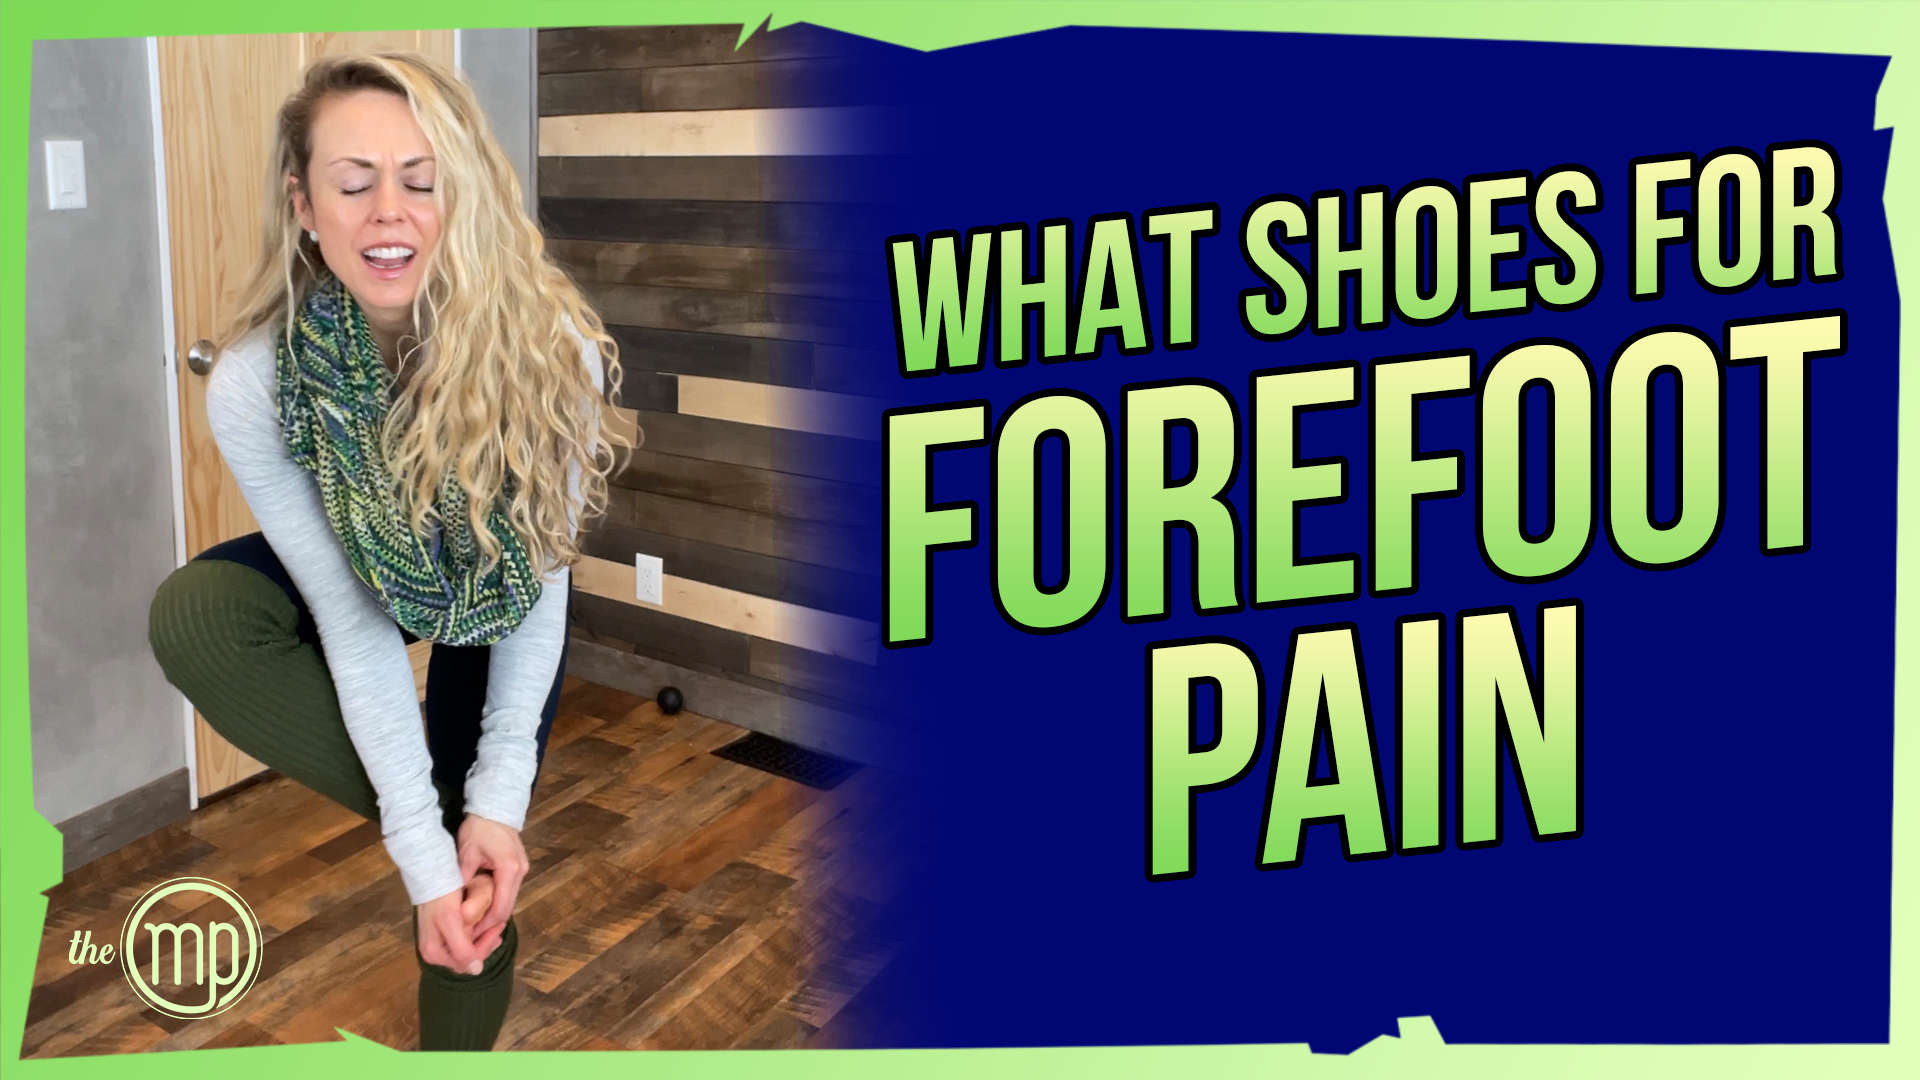 WHAT SHOES TO WEAR FOR FOREFOOT PAIN